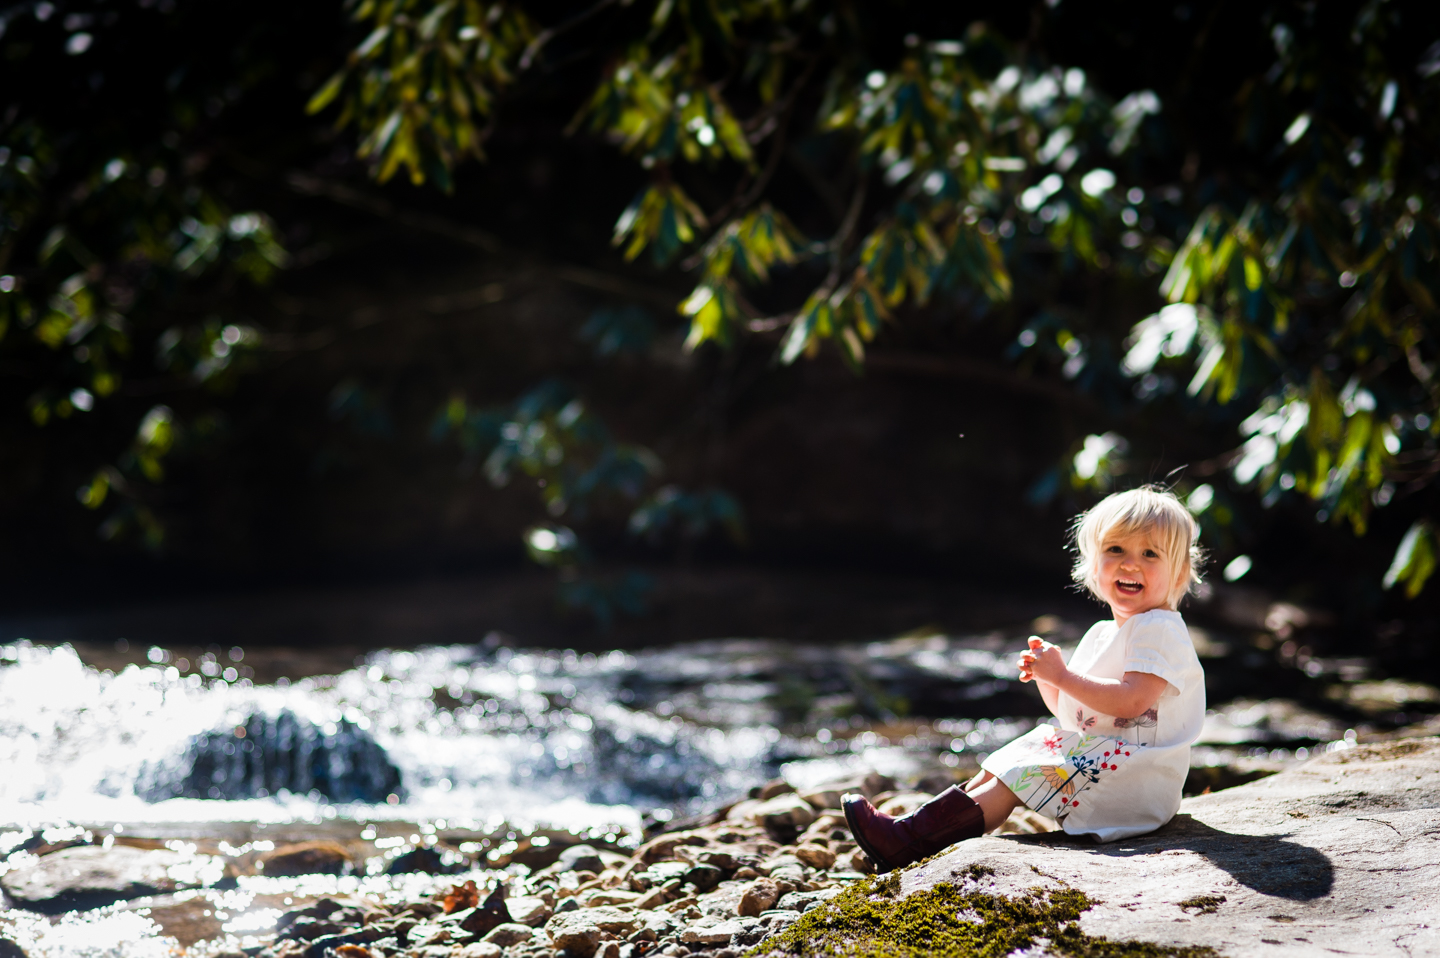 gorgeous toddler during her adventure photography session by a stream